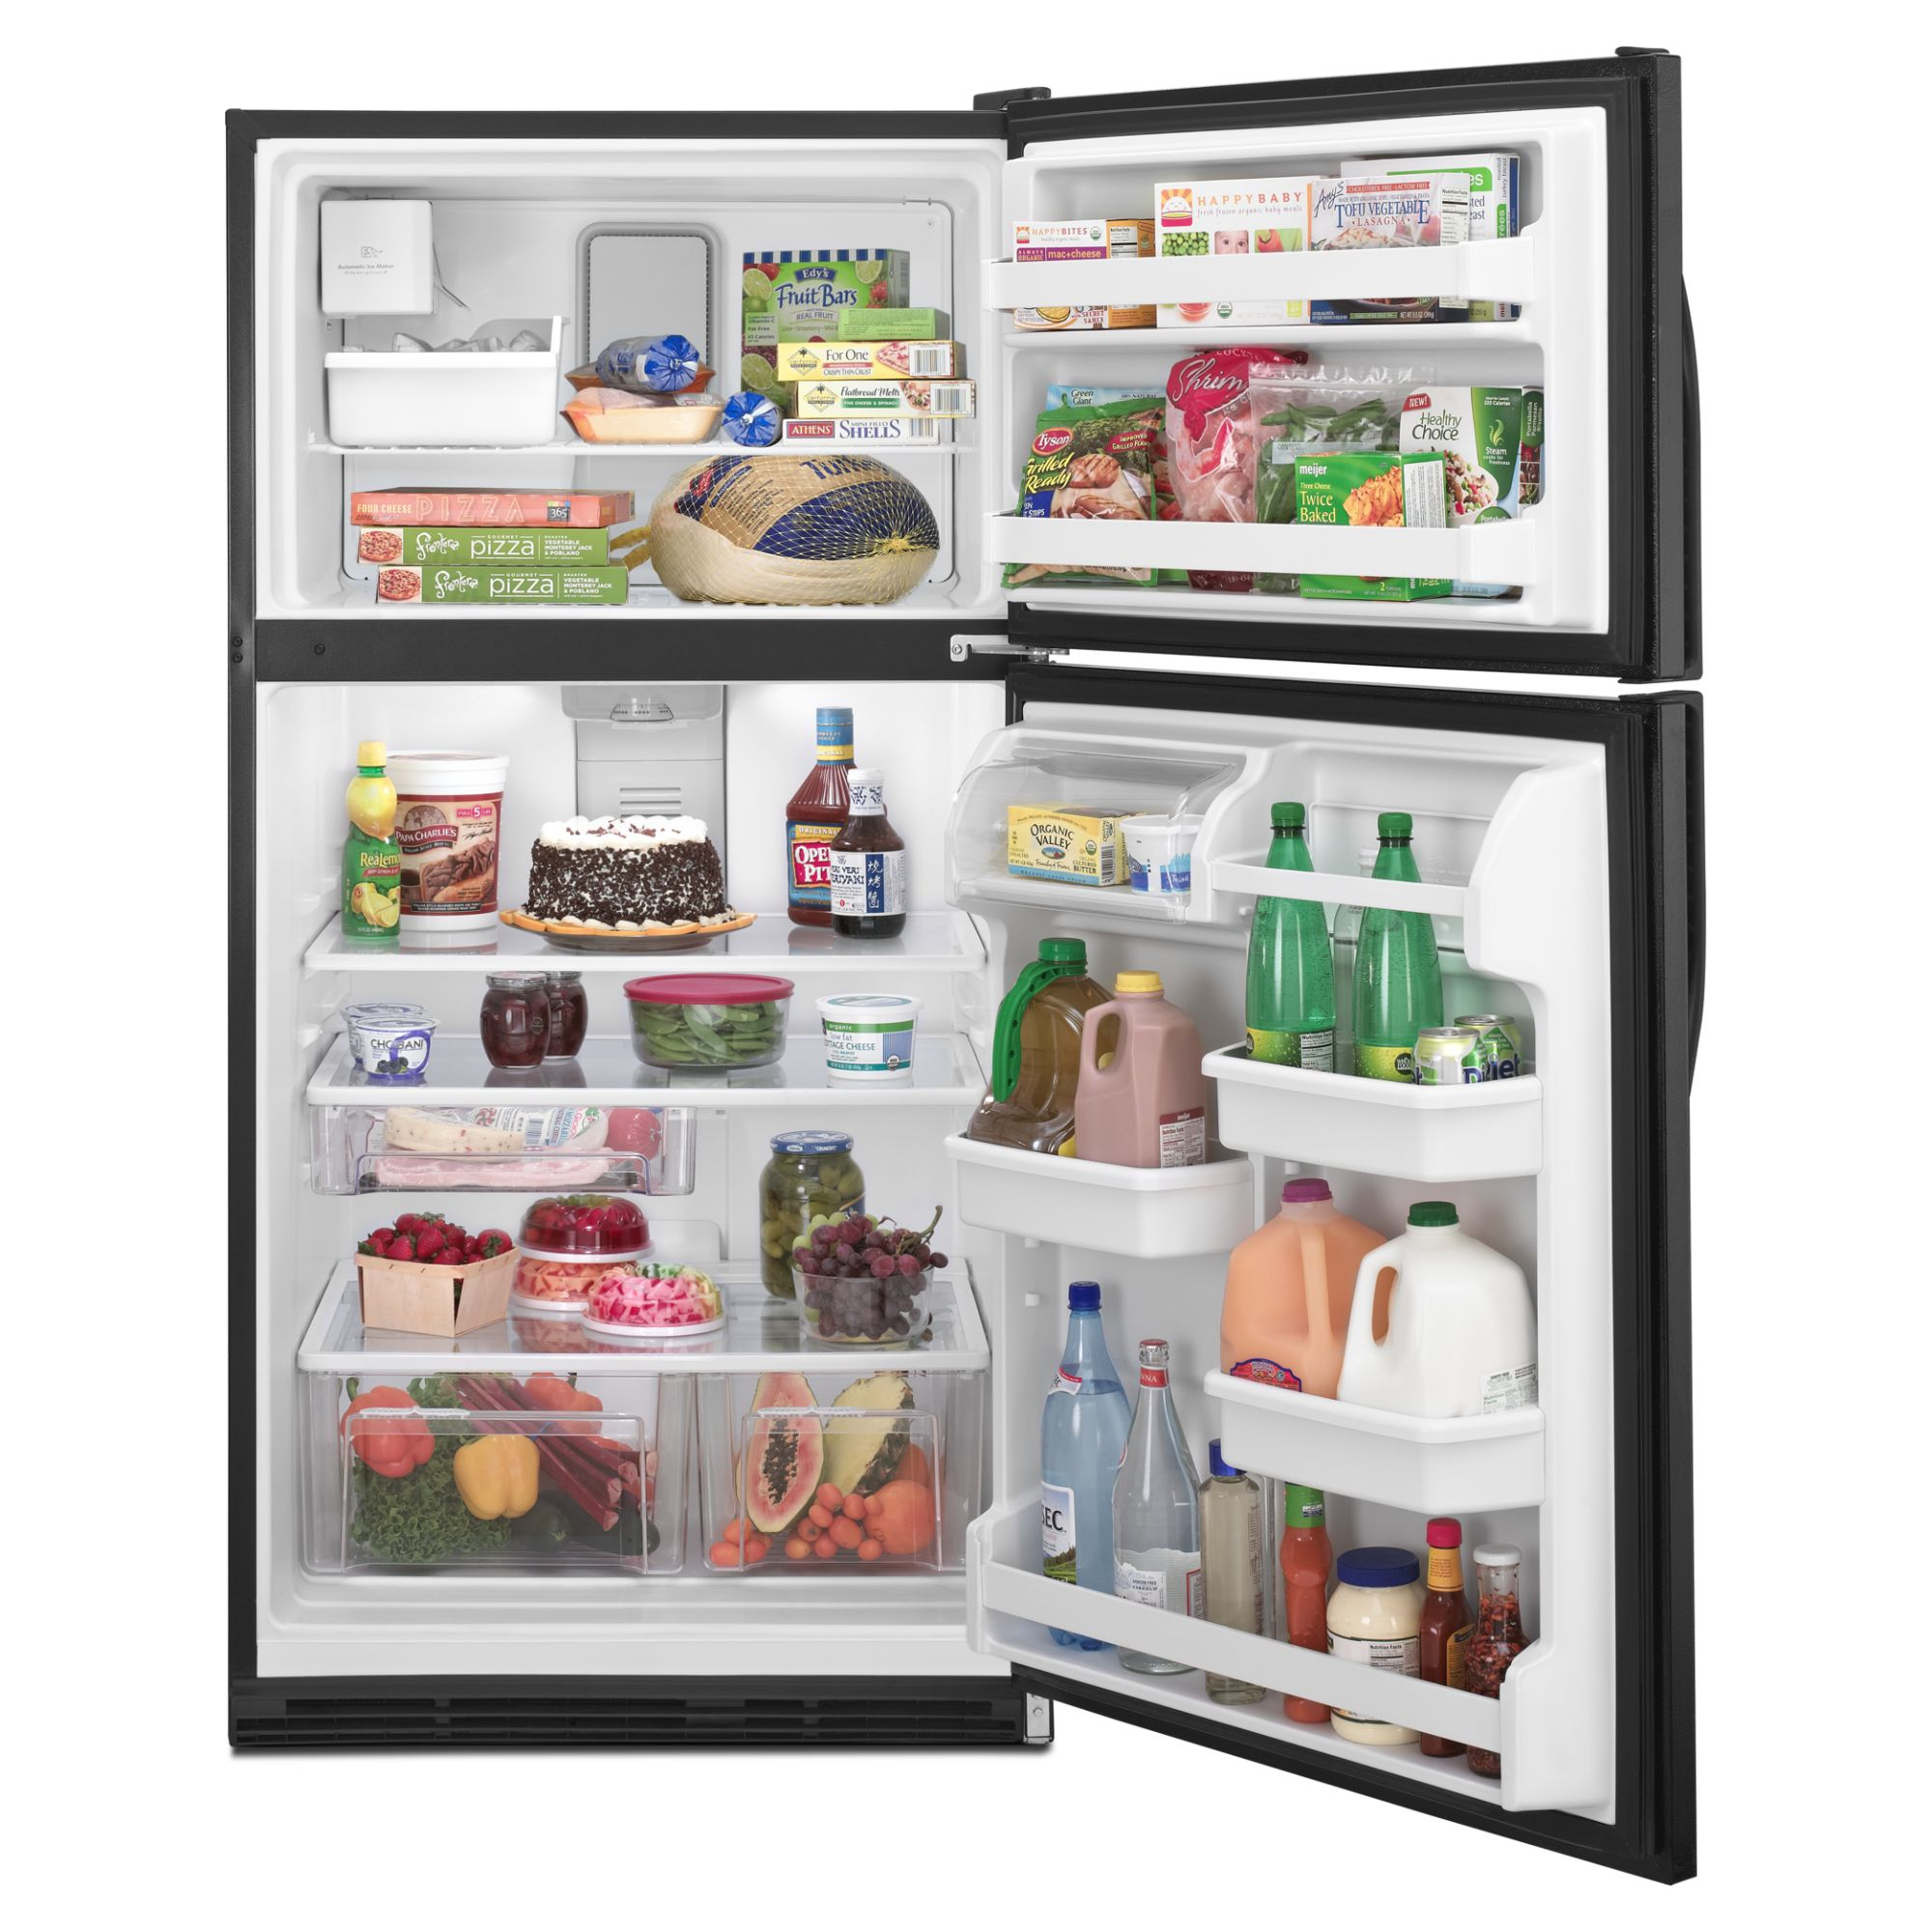 Maytag 20.6 cu. ft. Top-Freezer Refrigerator w/ FreshLock™ Crispers - White